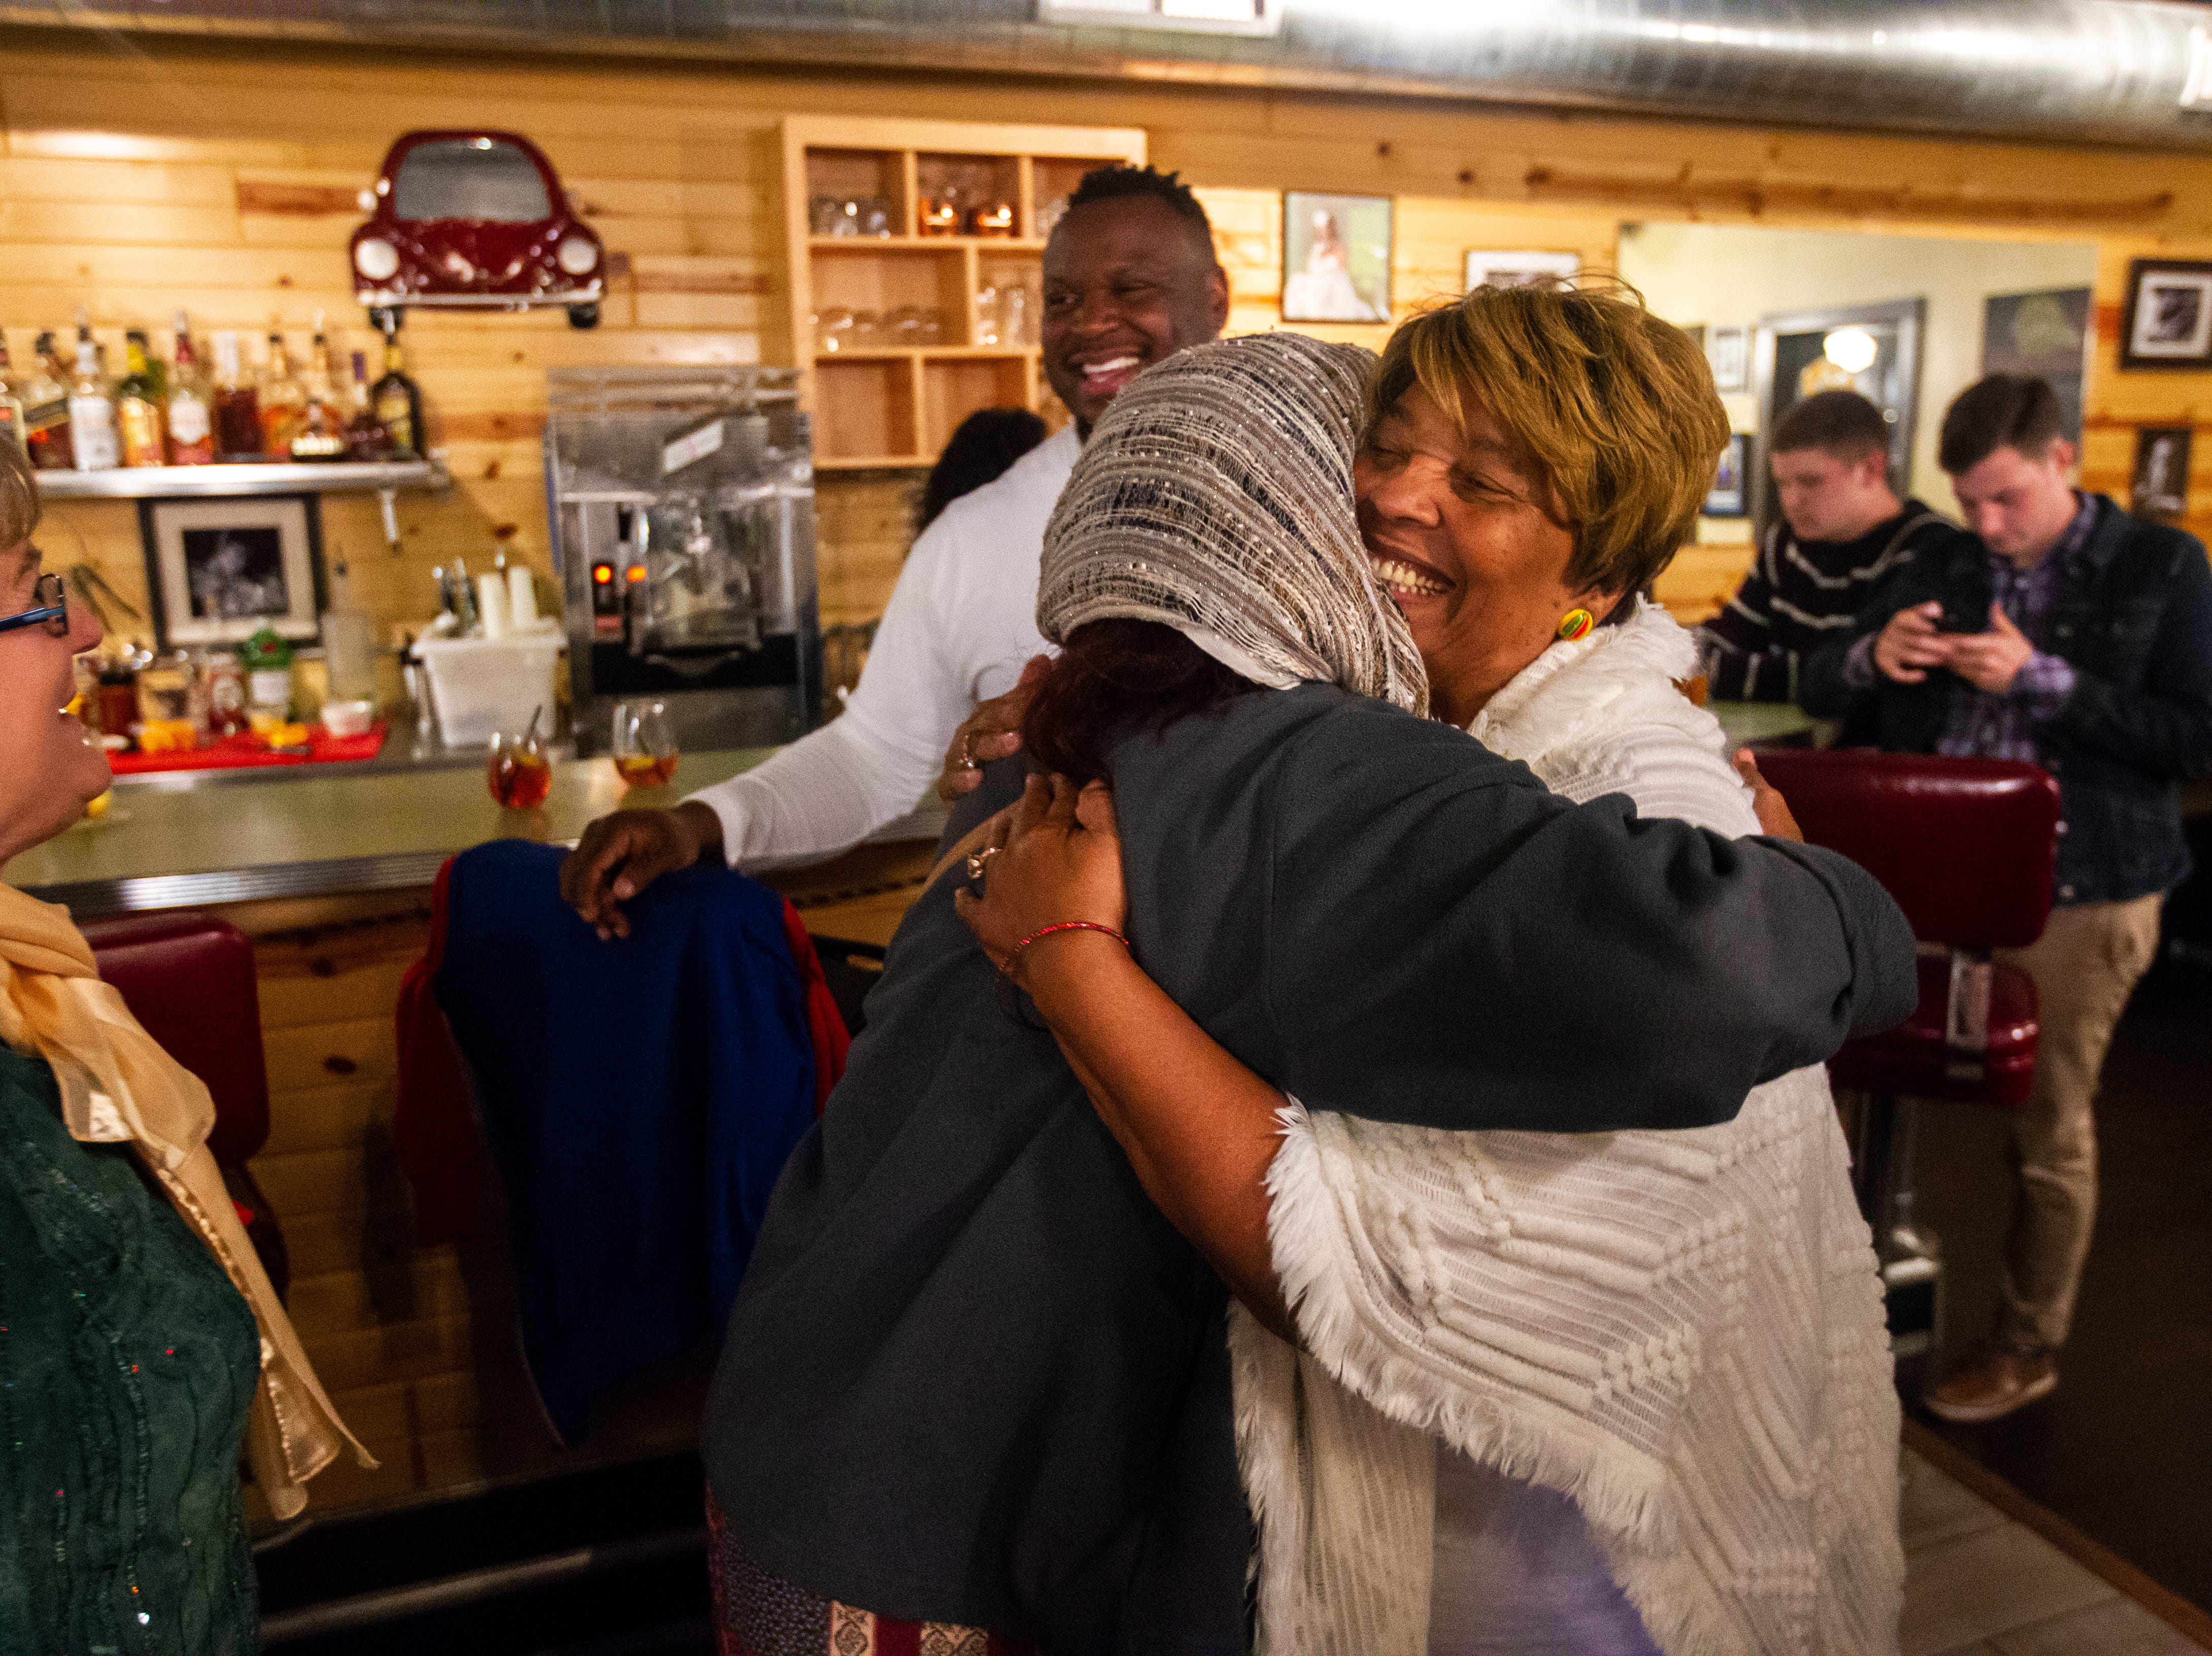 Mazahir Salih embraces Mary Teague, Bruce Teague's mother, on Tuesday, Oct. 2, 2018, at Billy's High Hat Diner on Iowa Avenue in Iowa City.